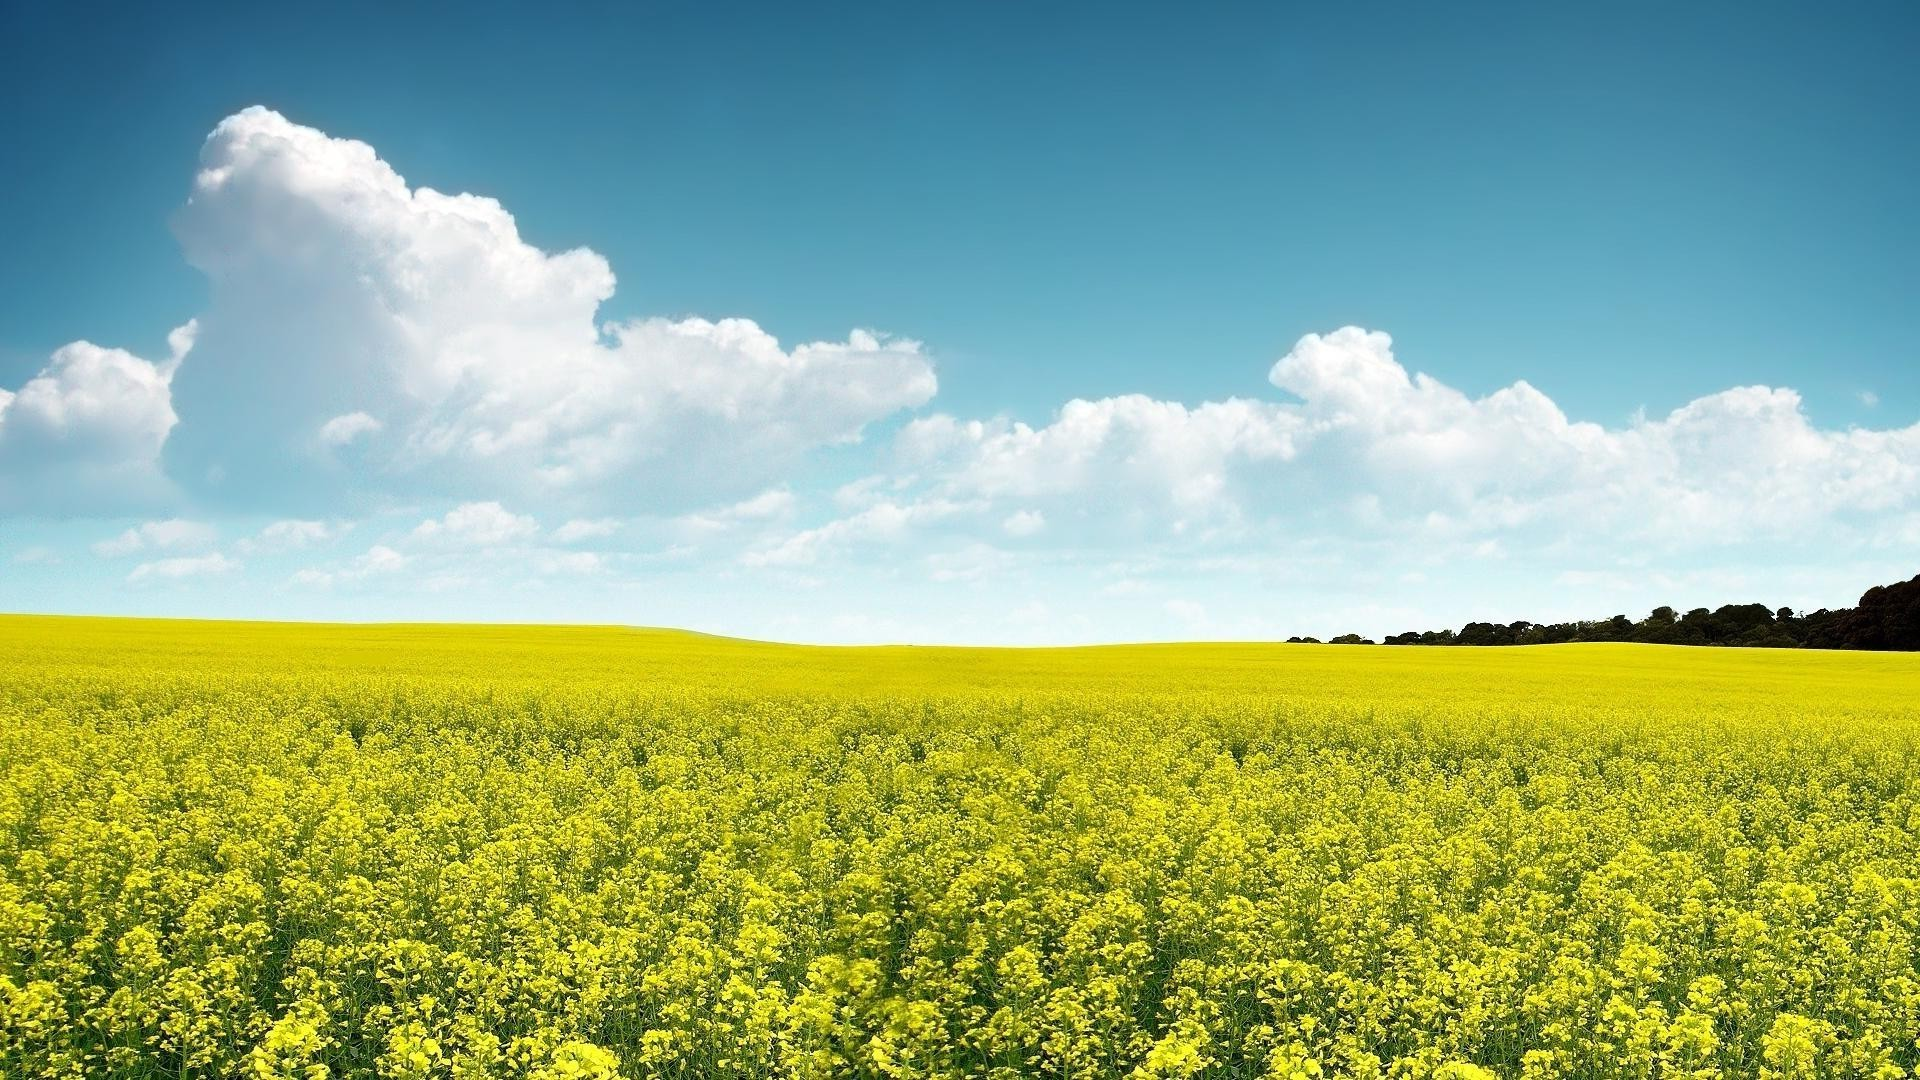 A Field Of Yellow Flowers Android Wallpapers For Free